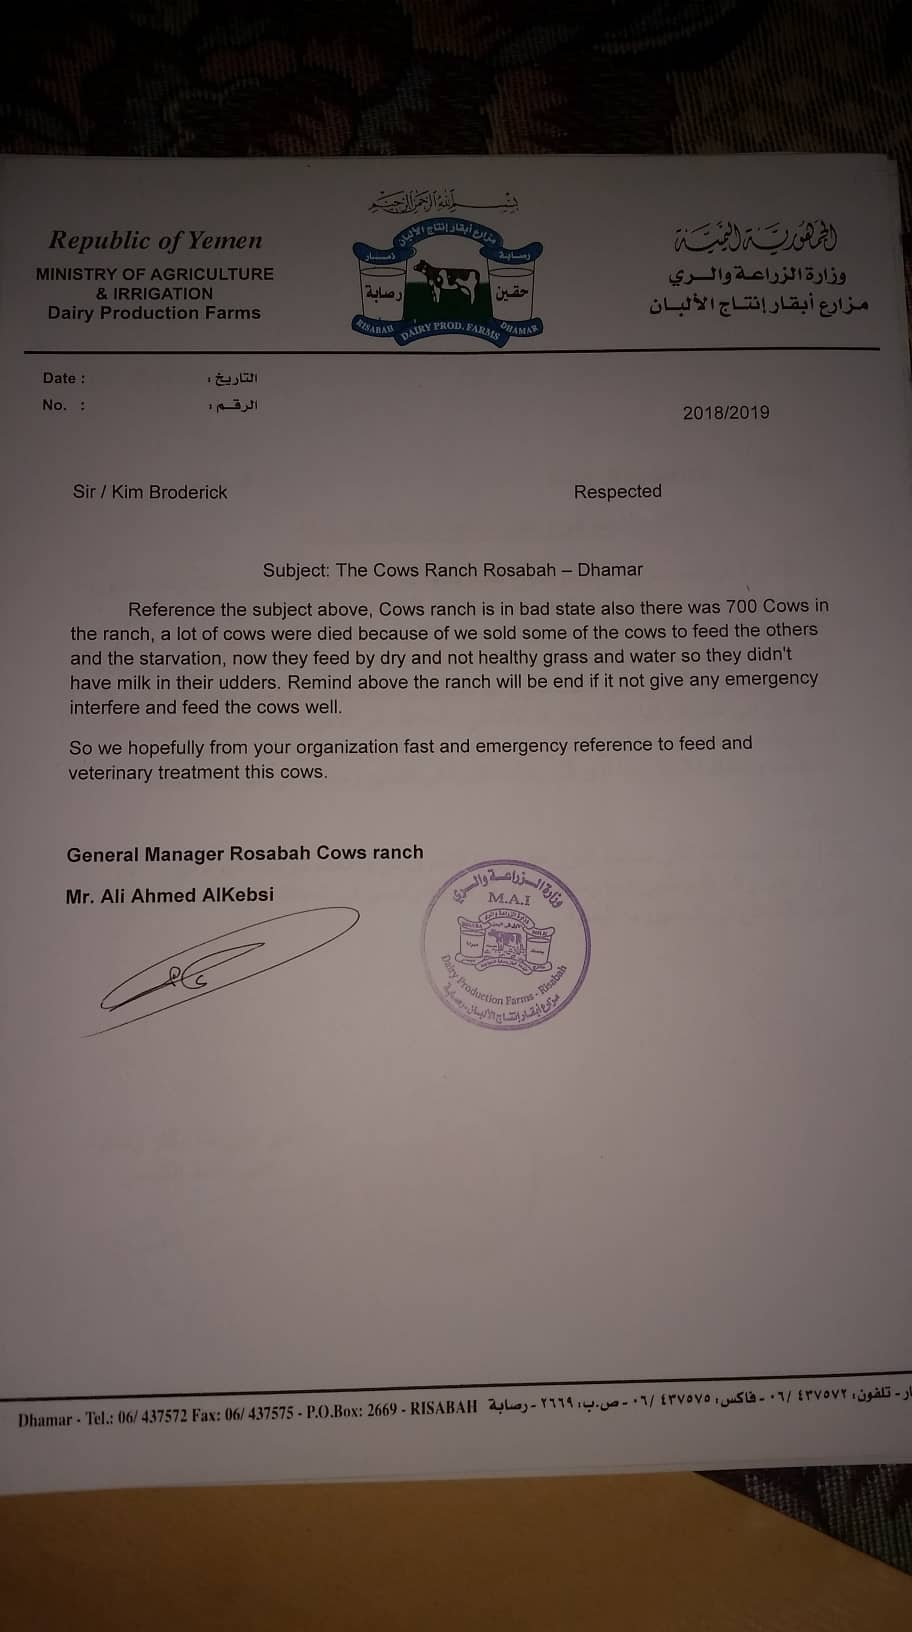 Dhamar rosabah farm letter of Request for relief aid assistance 4 Nov 2018 for OWAP AR Hisham Al hoot visit.jpg